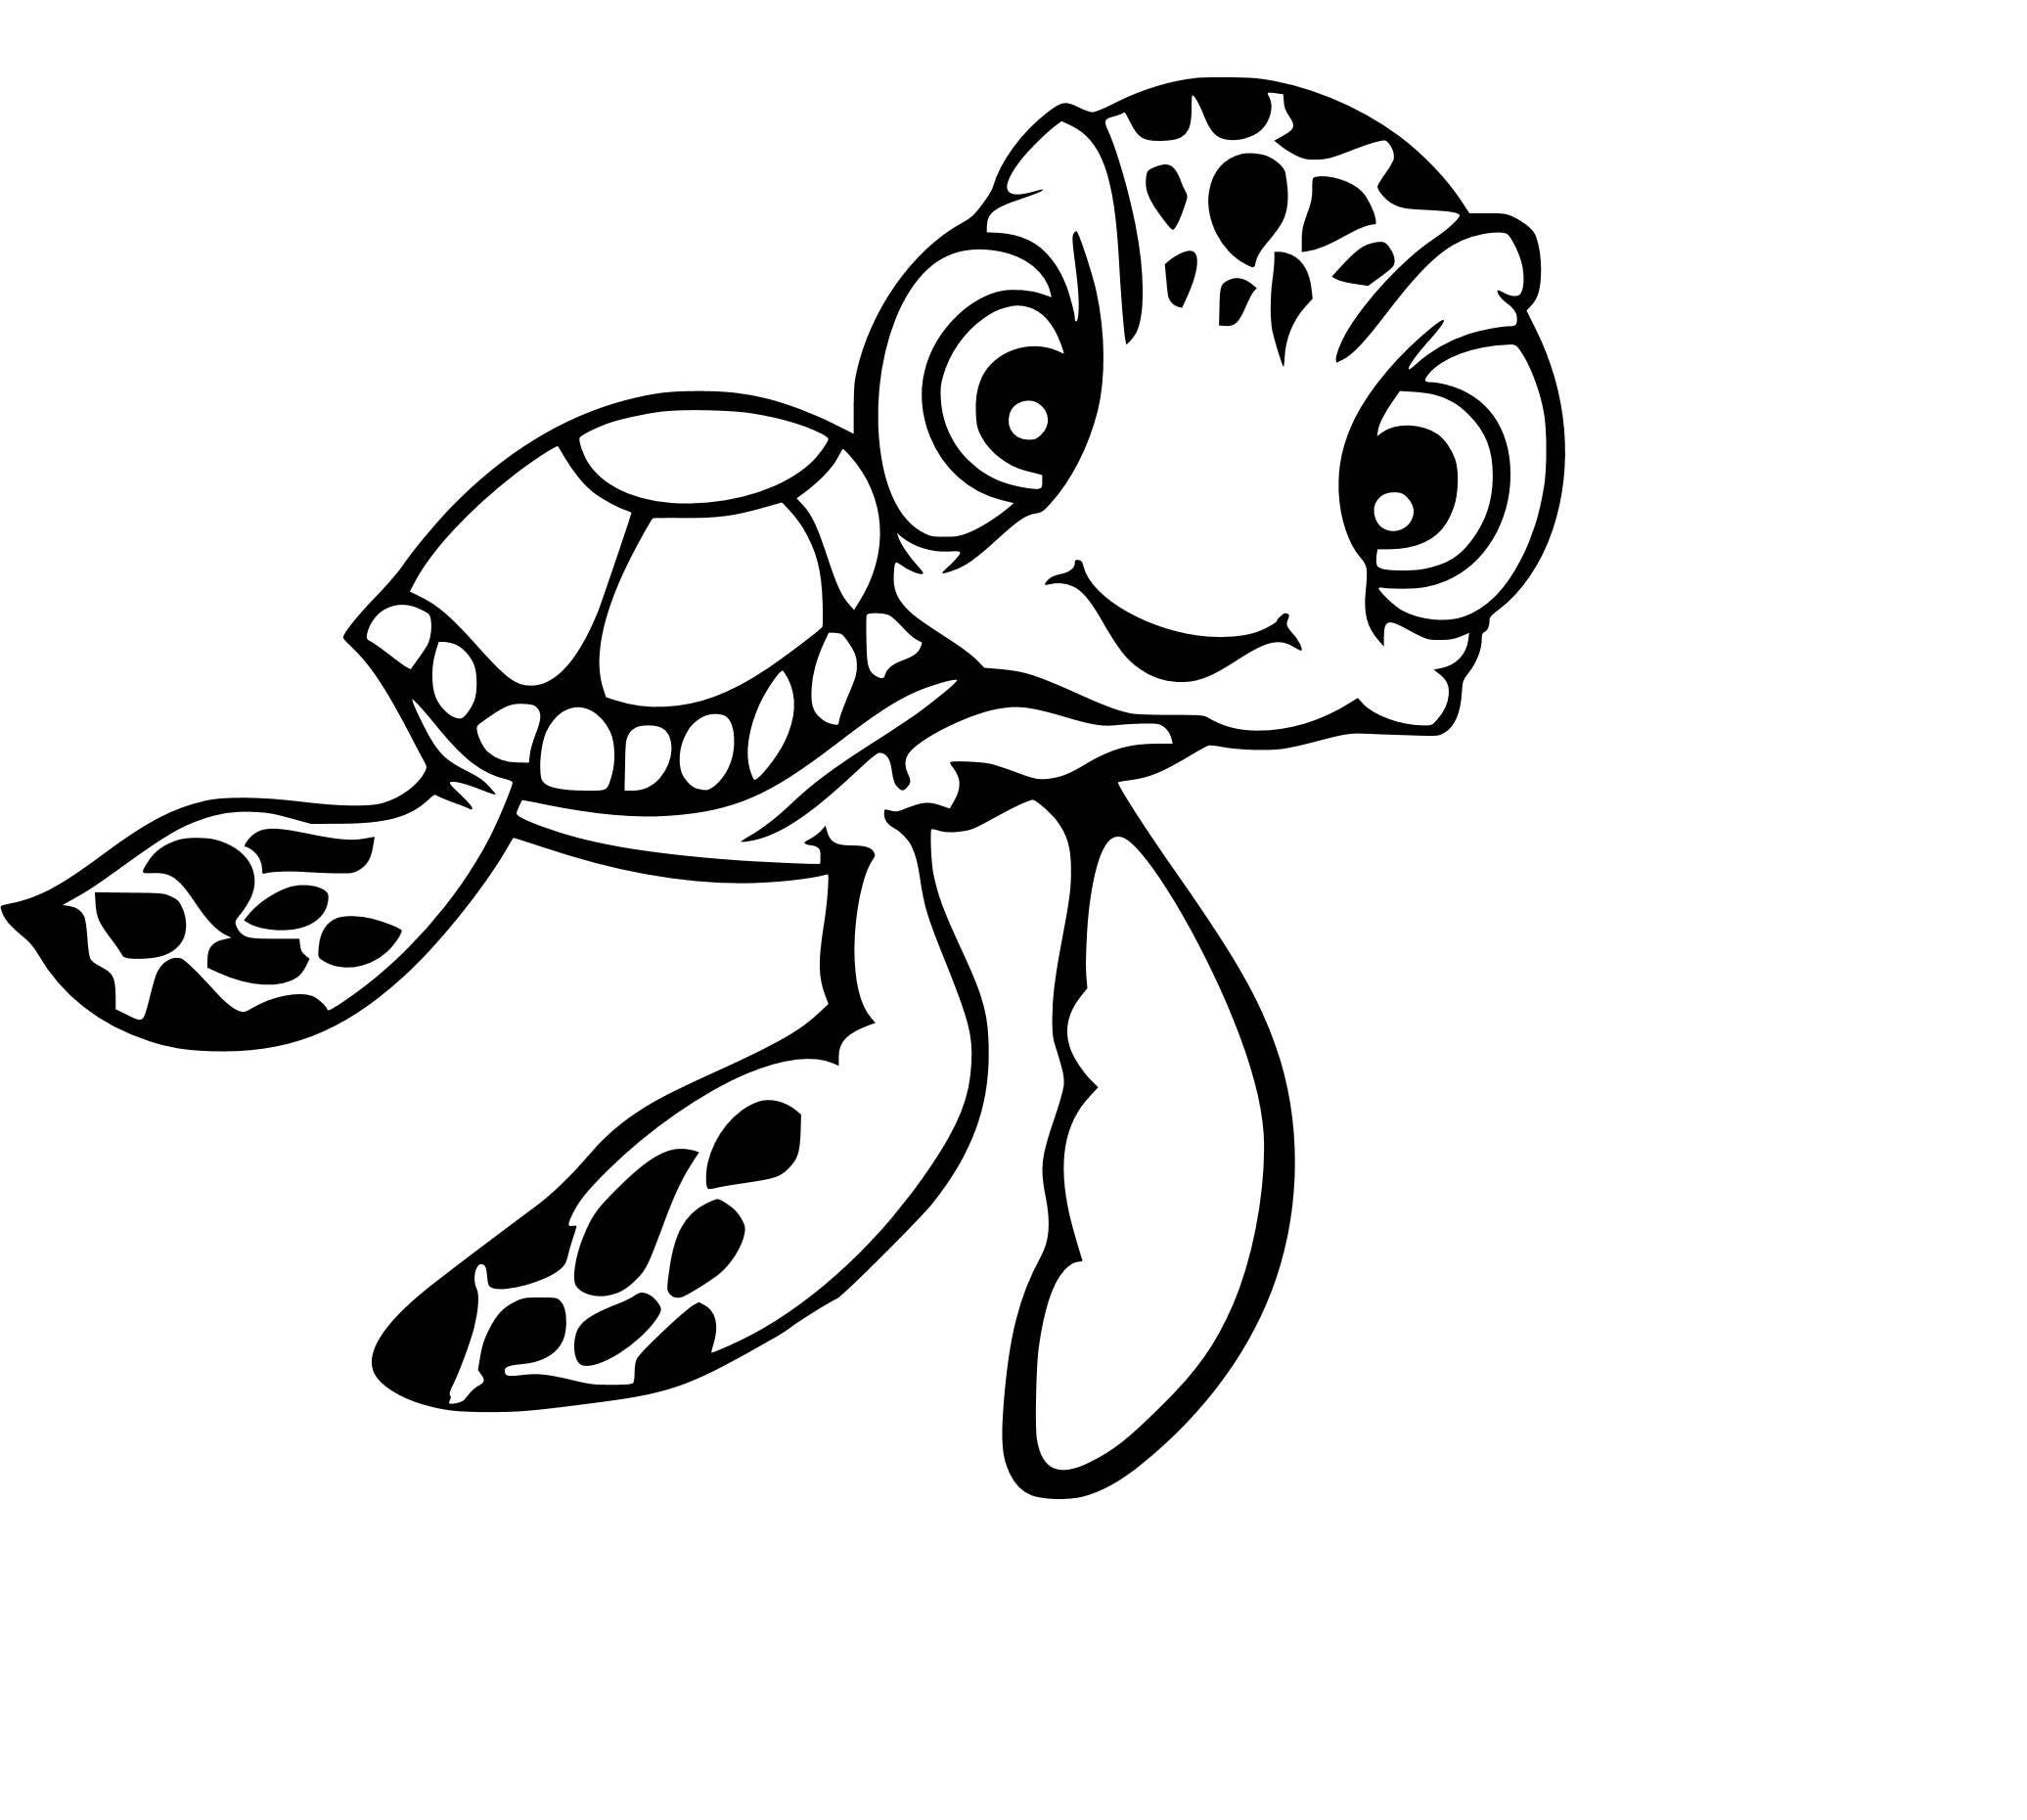 squirt turtle svg cutting file